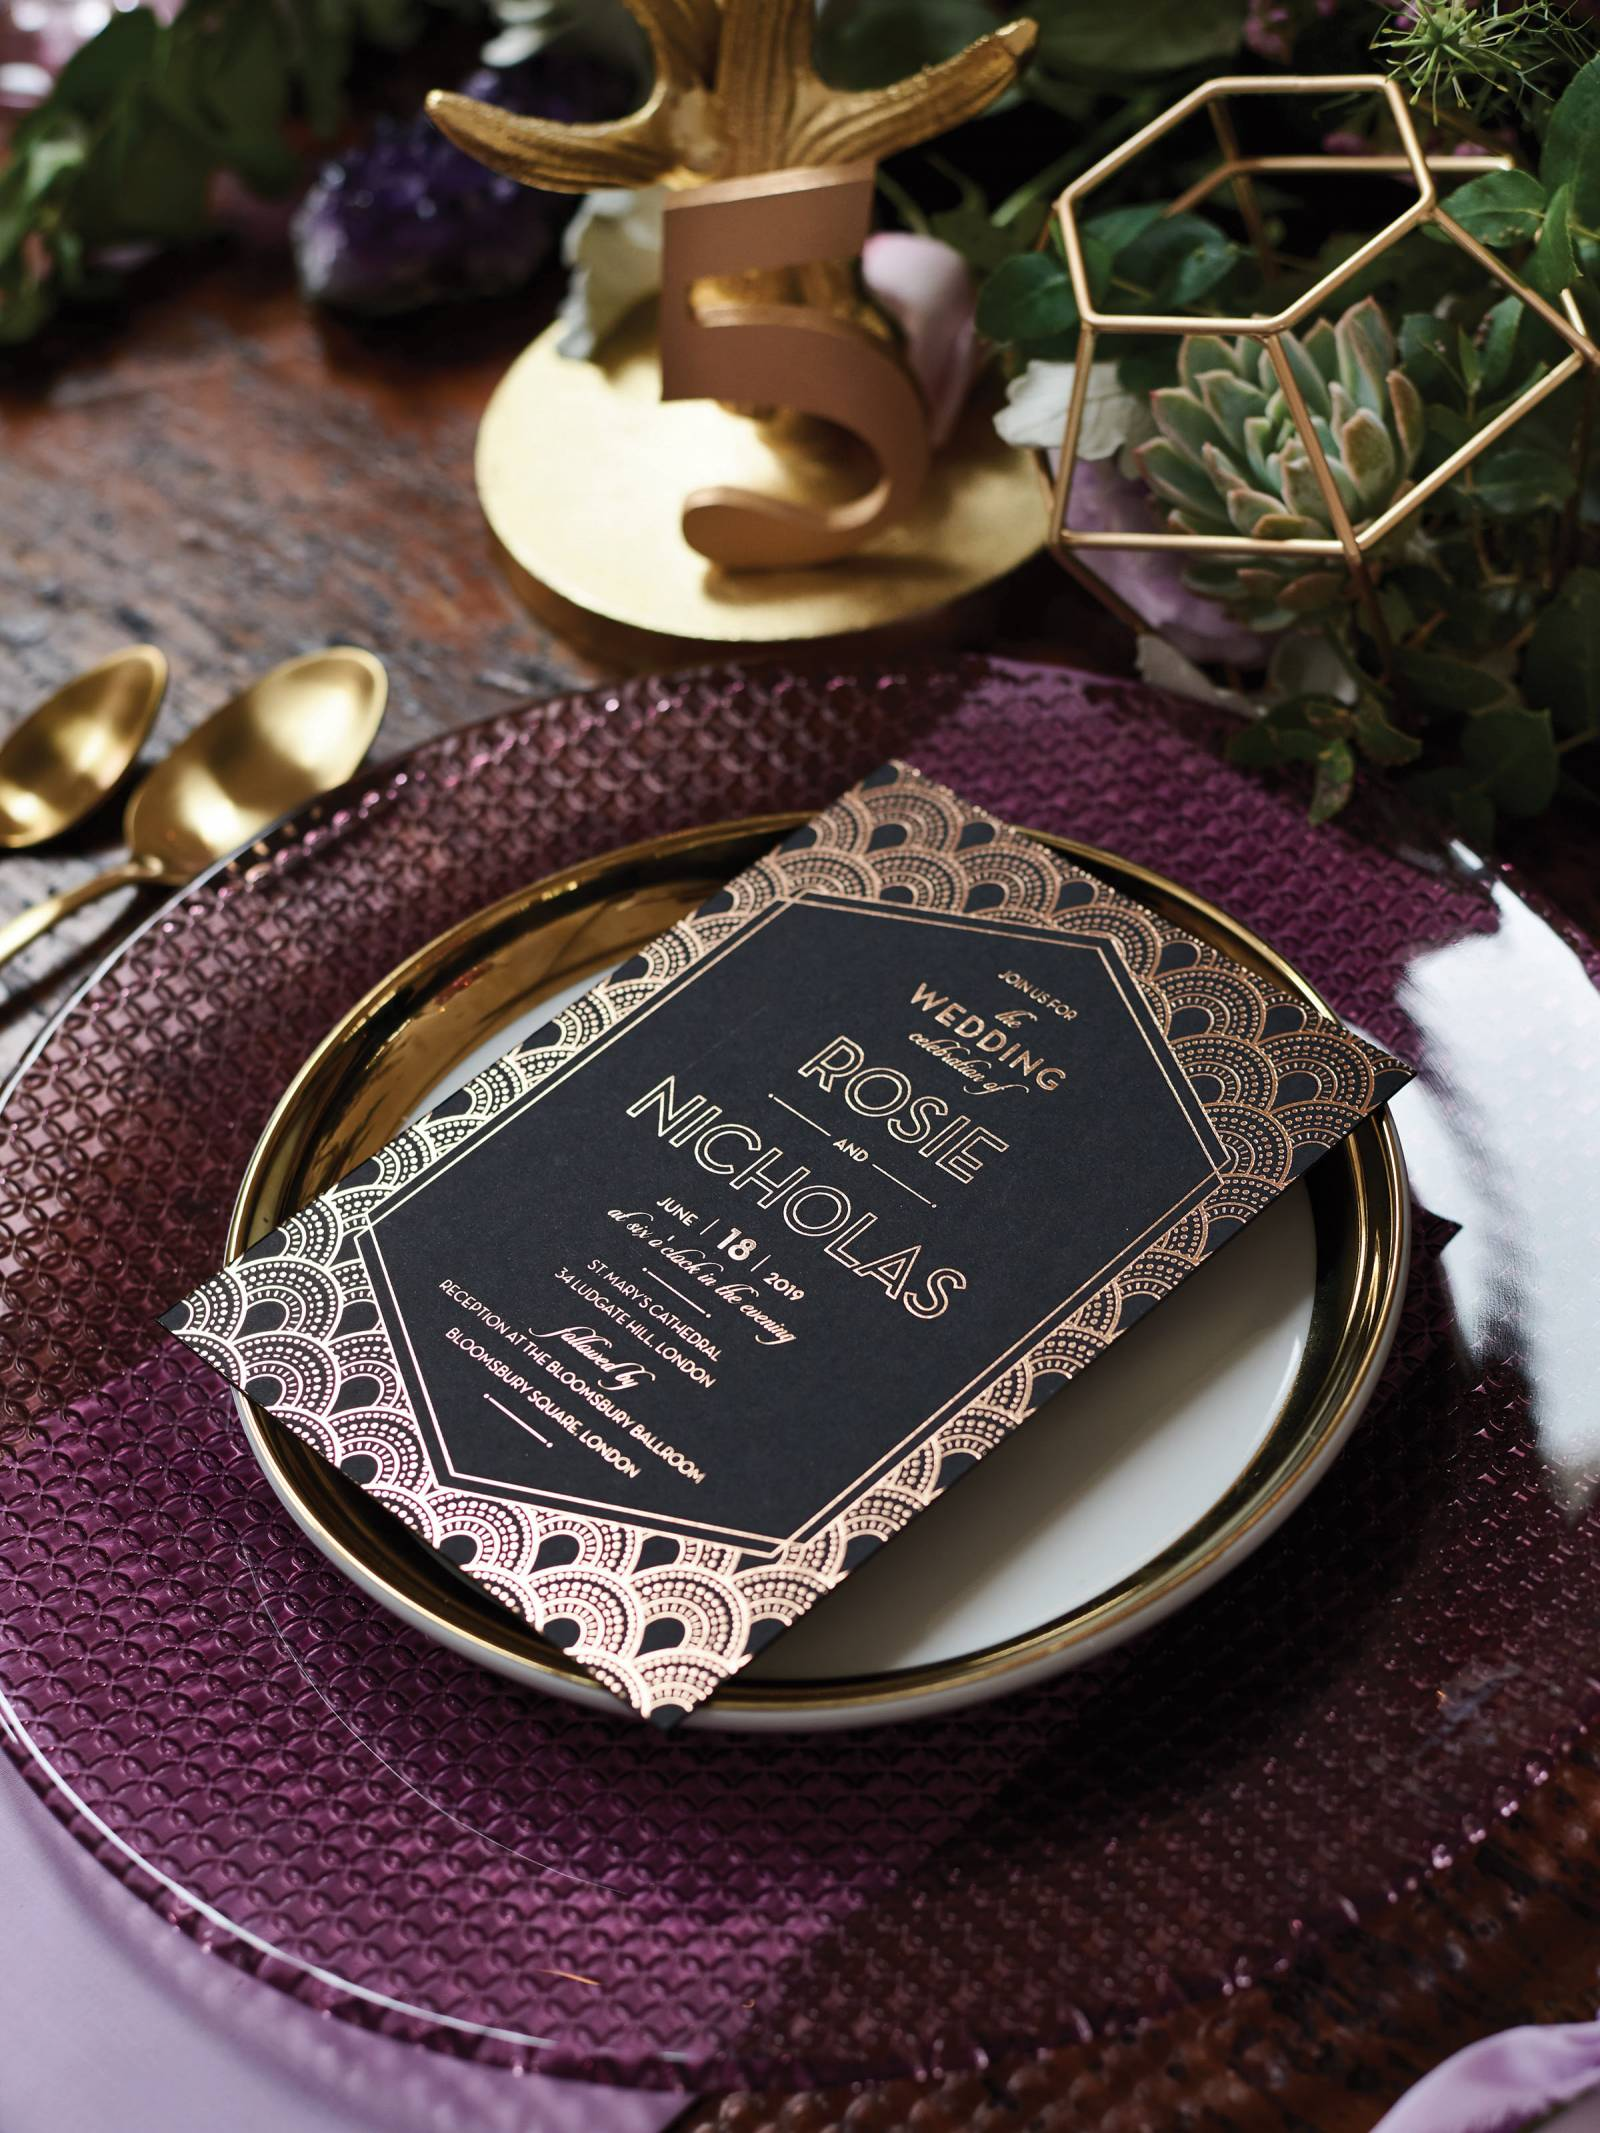 Gatsby styled wedding invitation in black and gold on a gold rimmed plate and purple charger